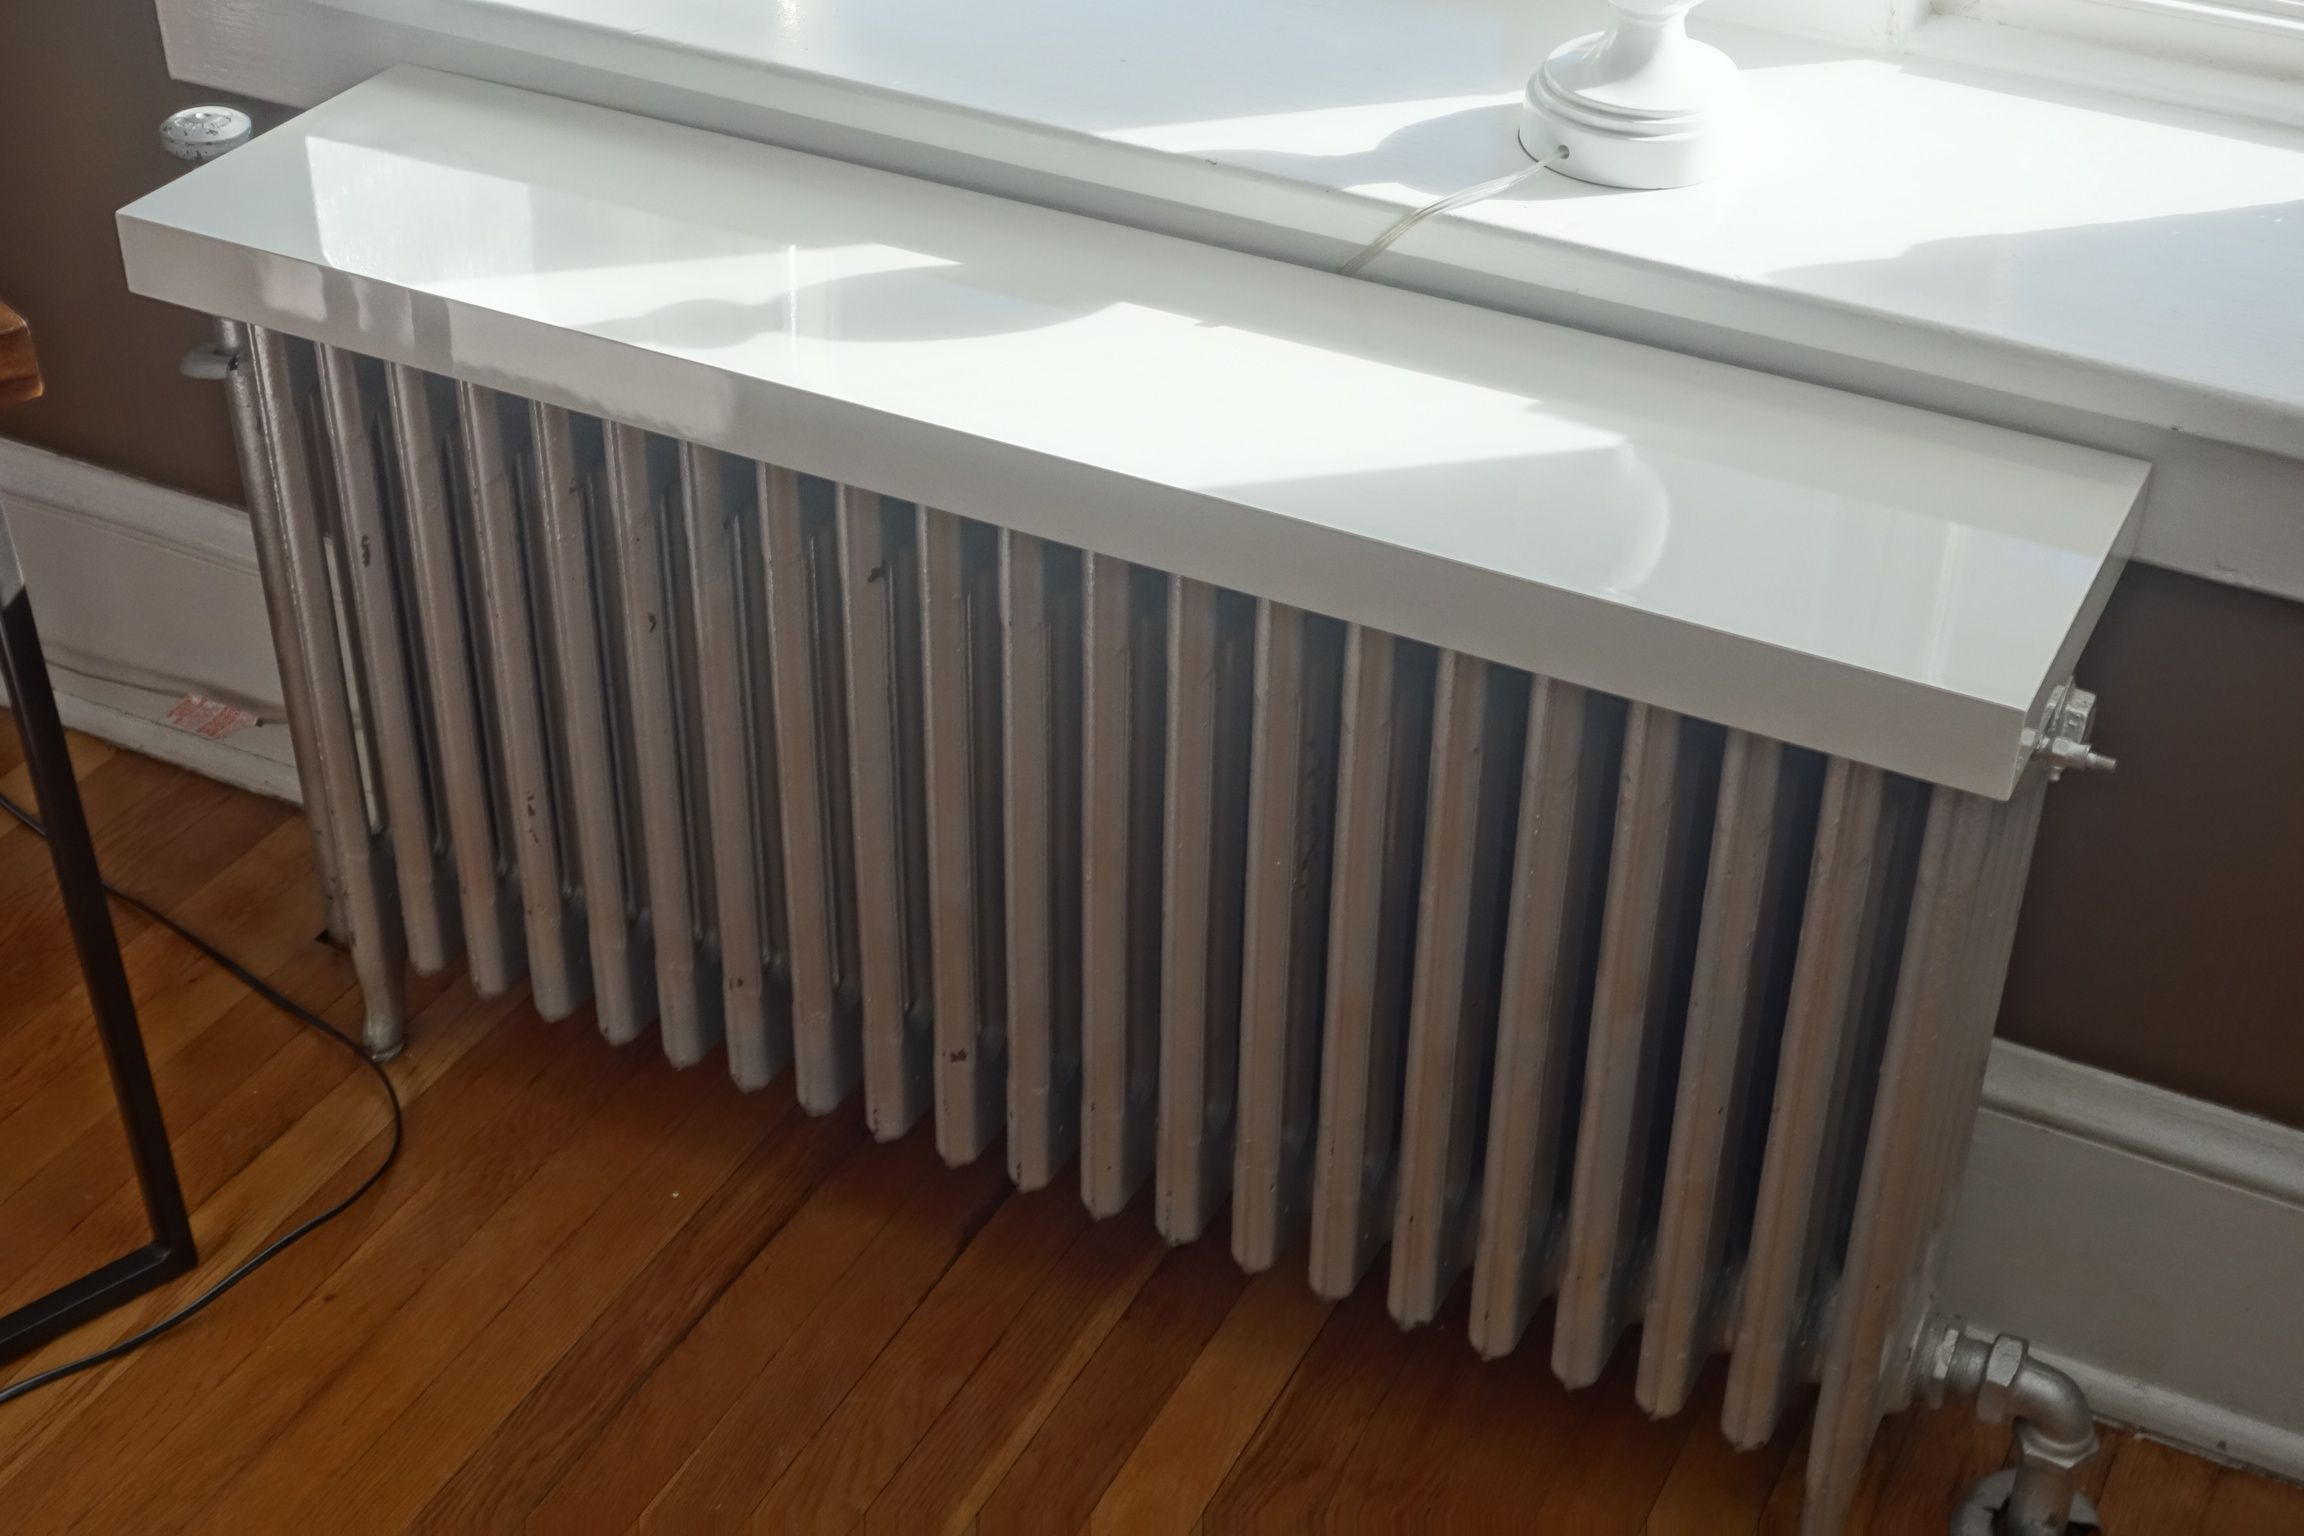 Ikea Lack Shelf On Top Of Our Old Radiator Clean And Functional